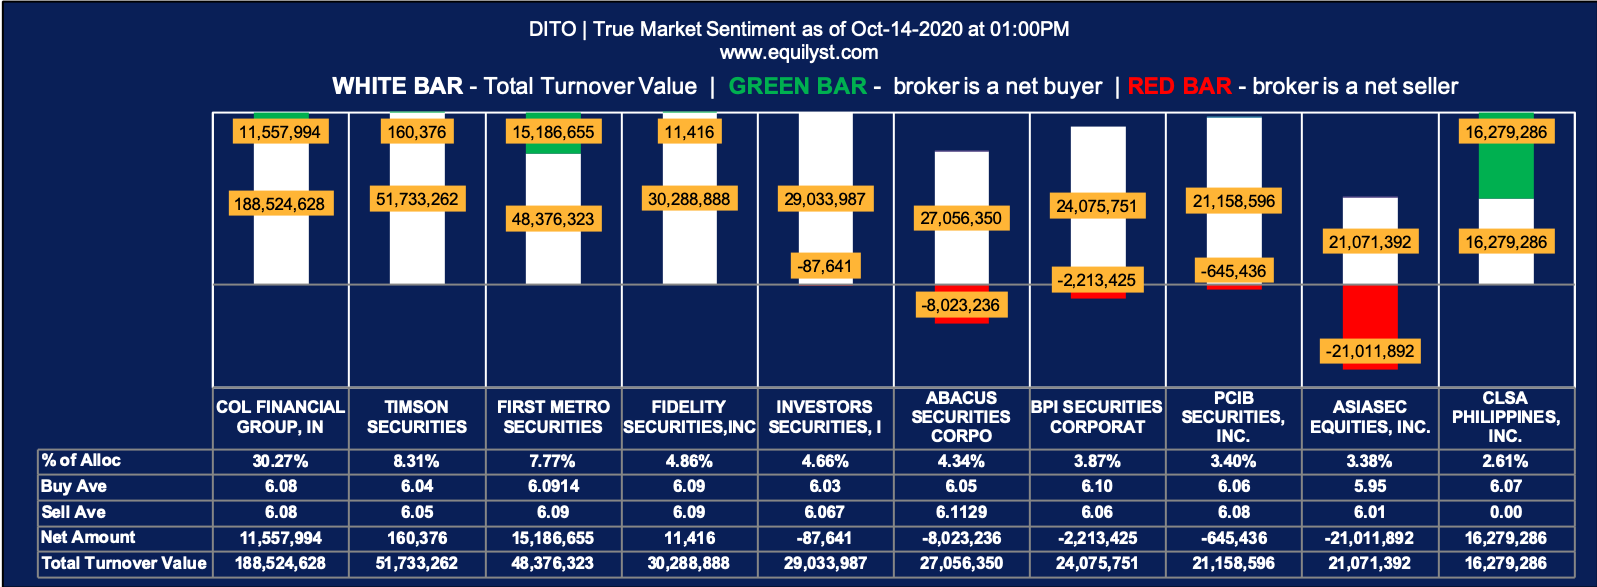 DITO CME Holdings Corp. (DITO) Analysis - True Market Sentiment EOD - October 14, 2020